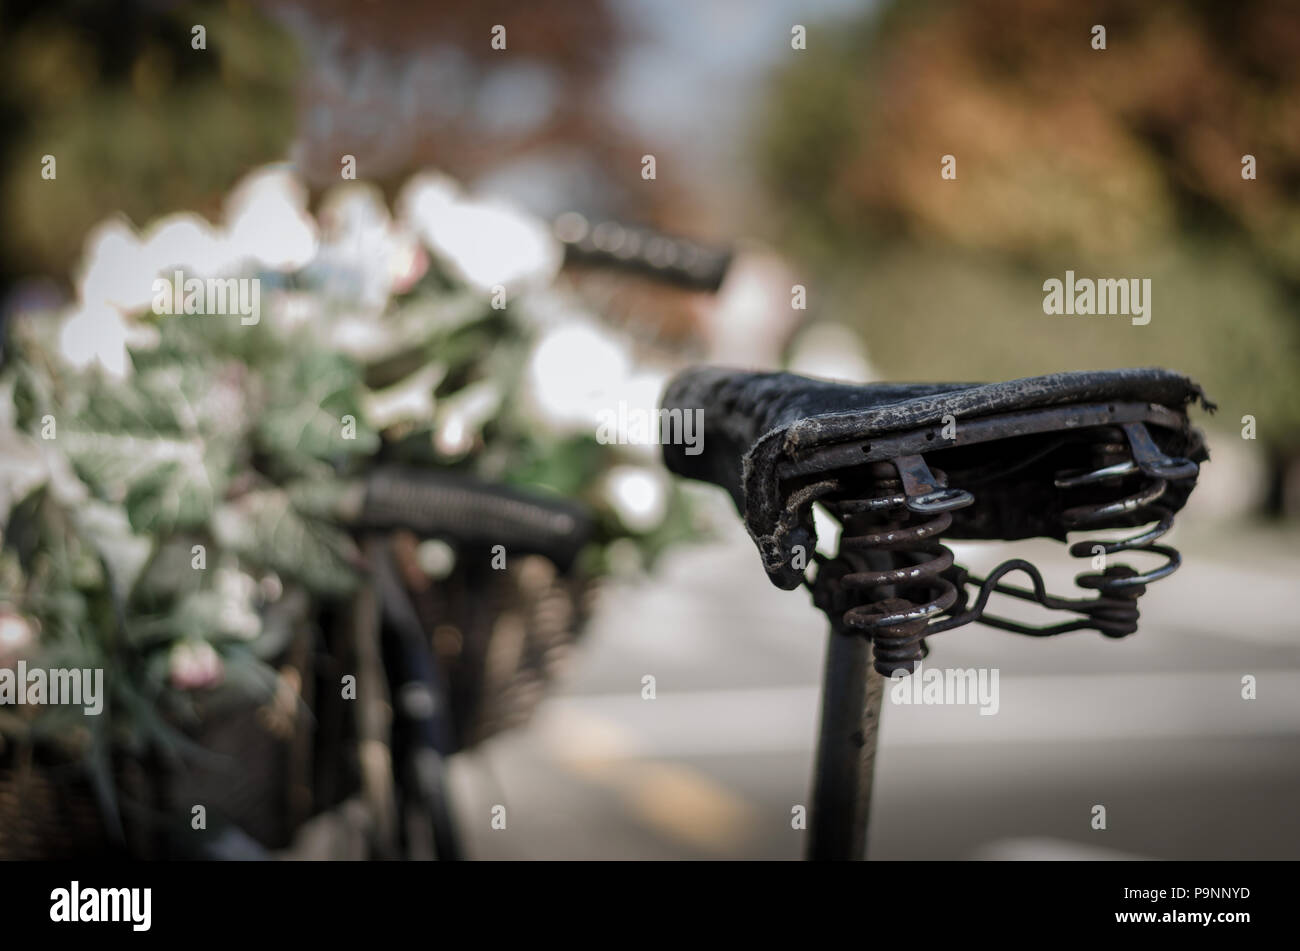 Close up of an old bicycle focussing on the seat, with a basket of flowers and the handlebars blurred in the background. - Stock Image